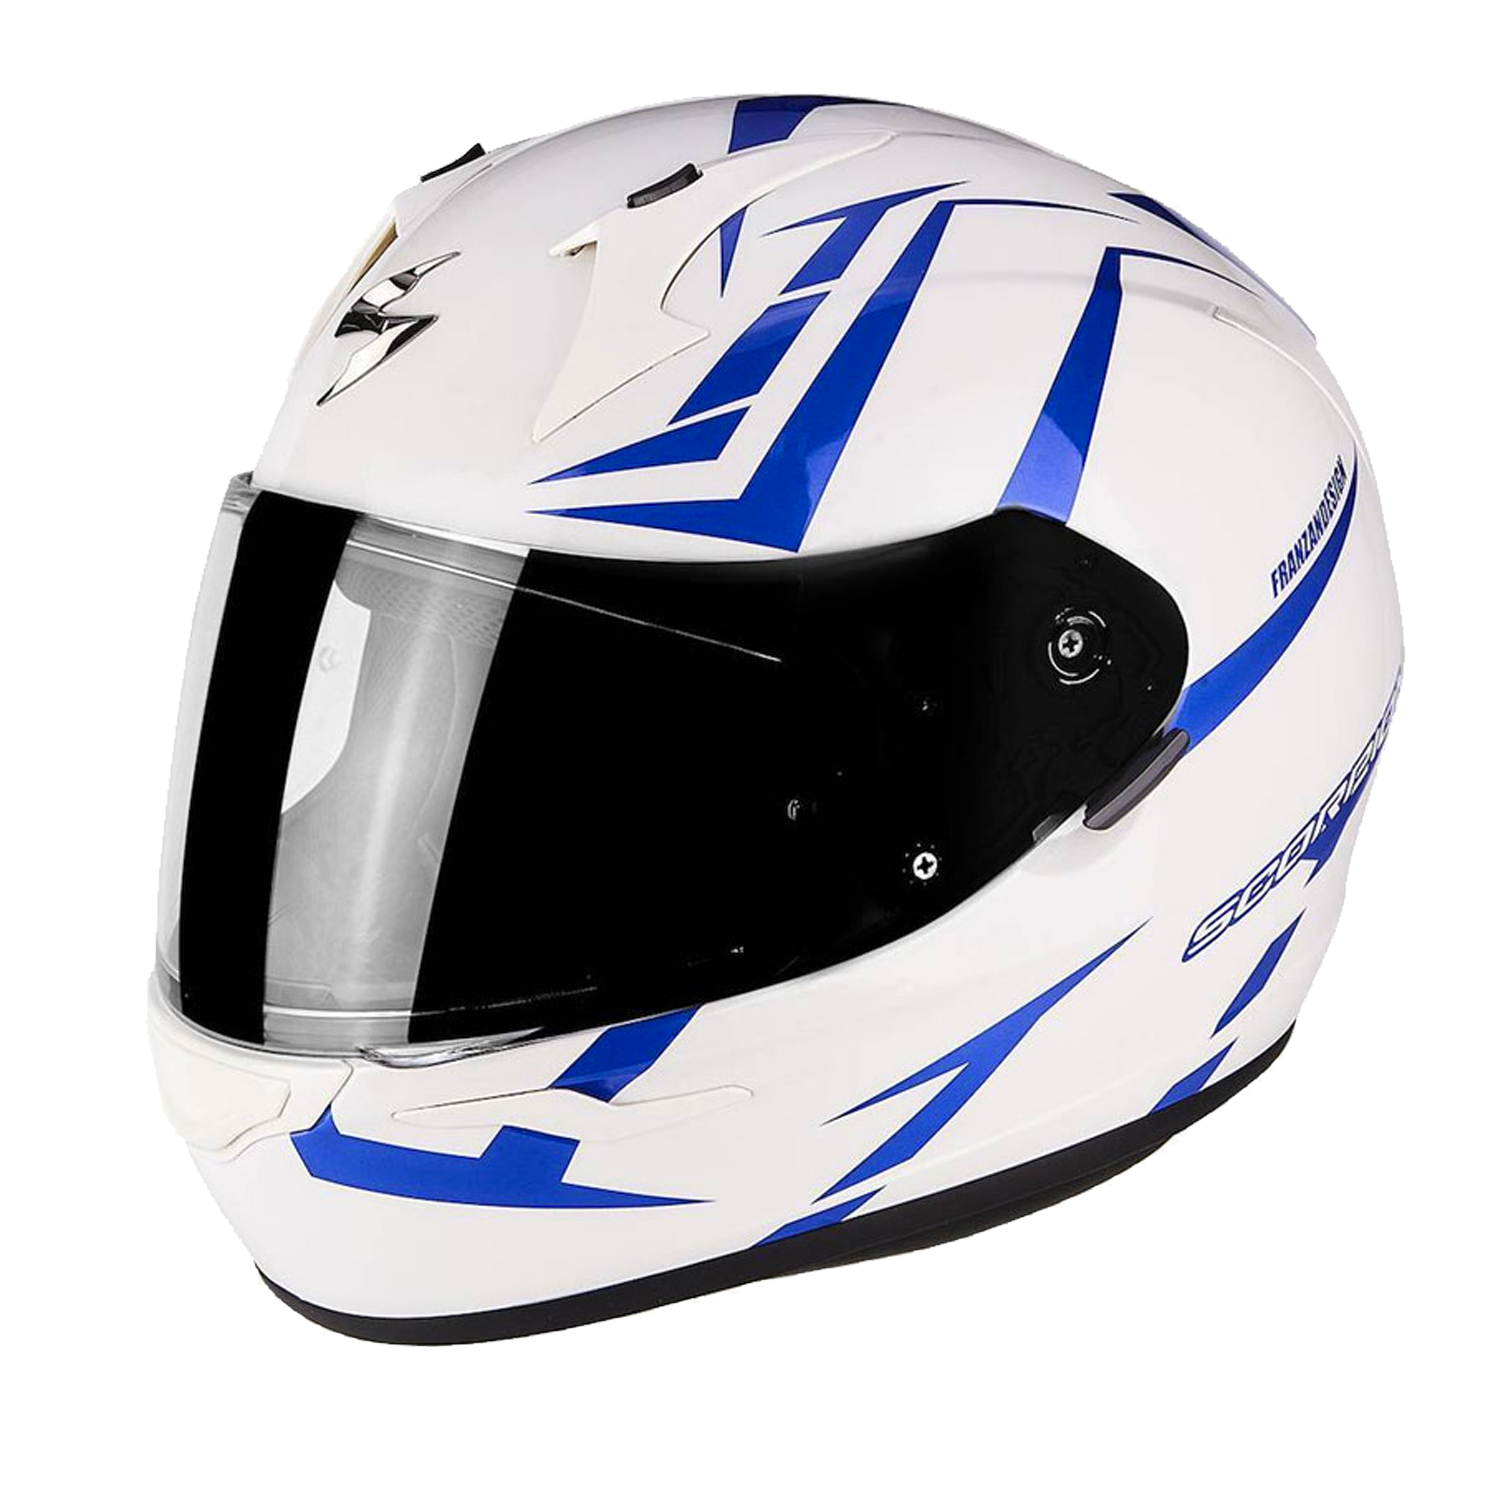 Casco Integrale Scorpion EXO 390 HAWK 39-264 Perla Bianco Blu